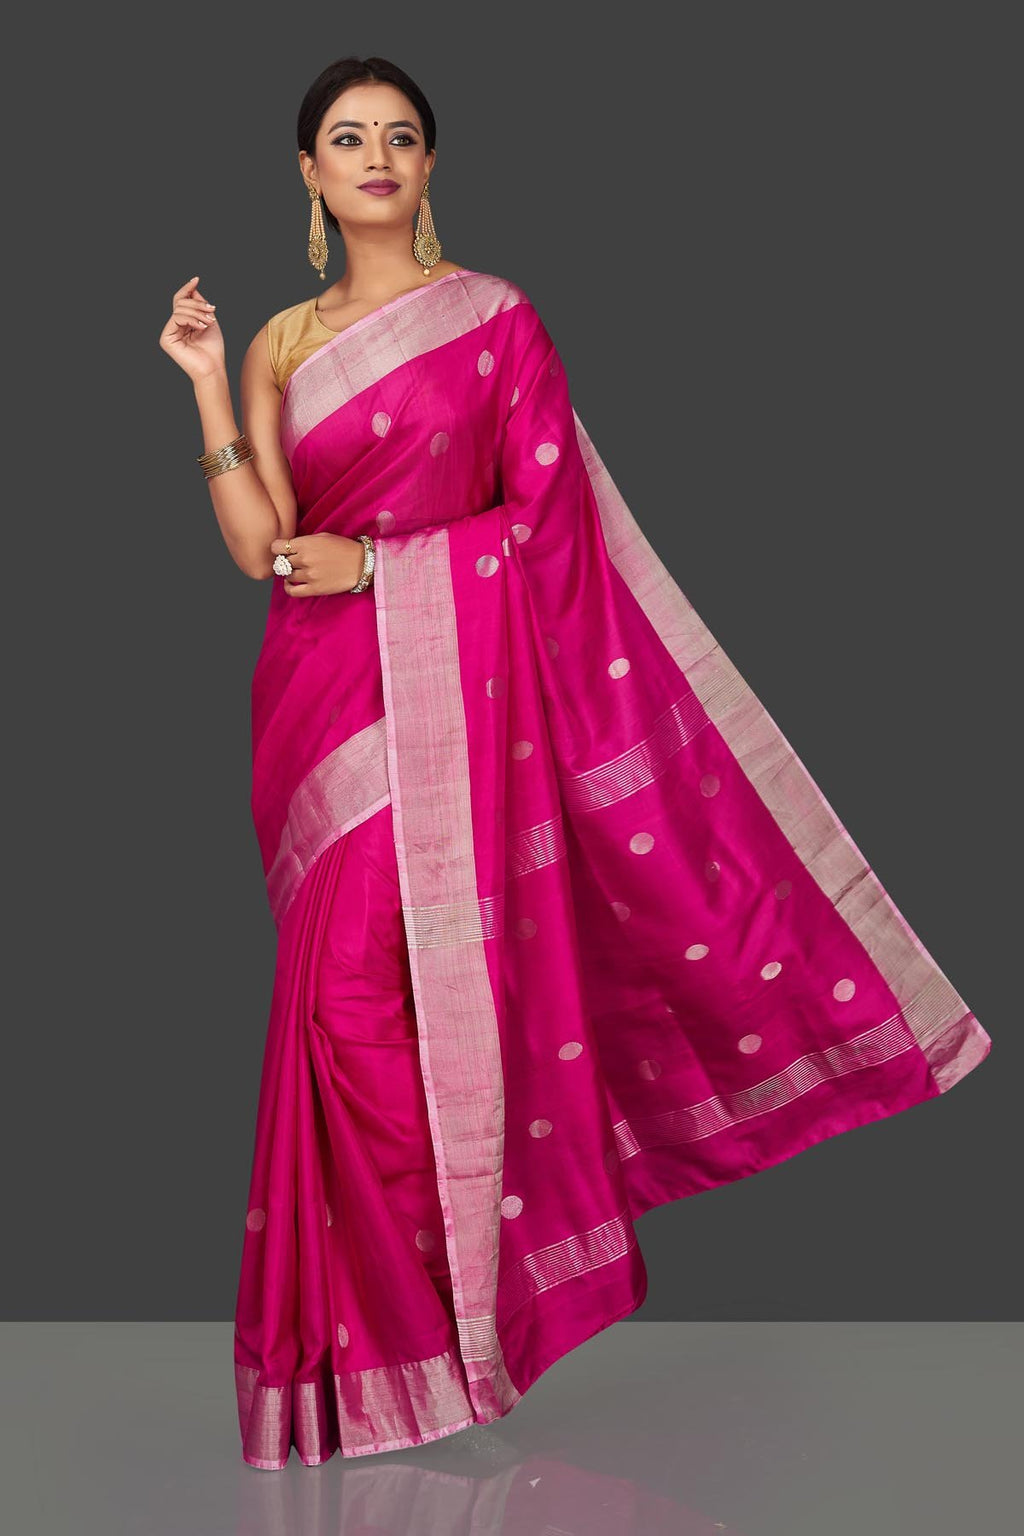 Buy bright pink Uppada silk saree online in USA with silver zari buta and border. Keep it elegant with handwoven silk sarees, Uppada silk sarees, soft silk sarees from Pure Elegance Indian fashion boutique in USA. We bring a especially curated collection of ethnic sarees for Indian women in USA under one roof!-full view